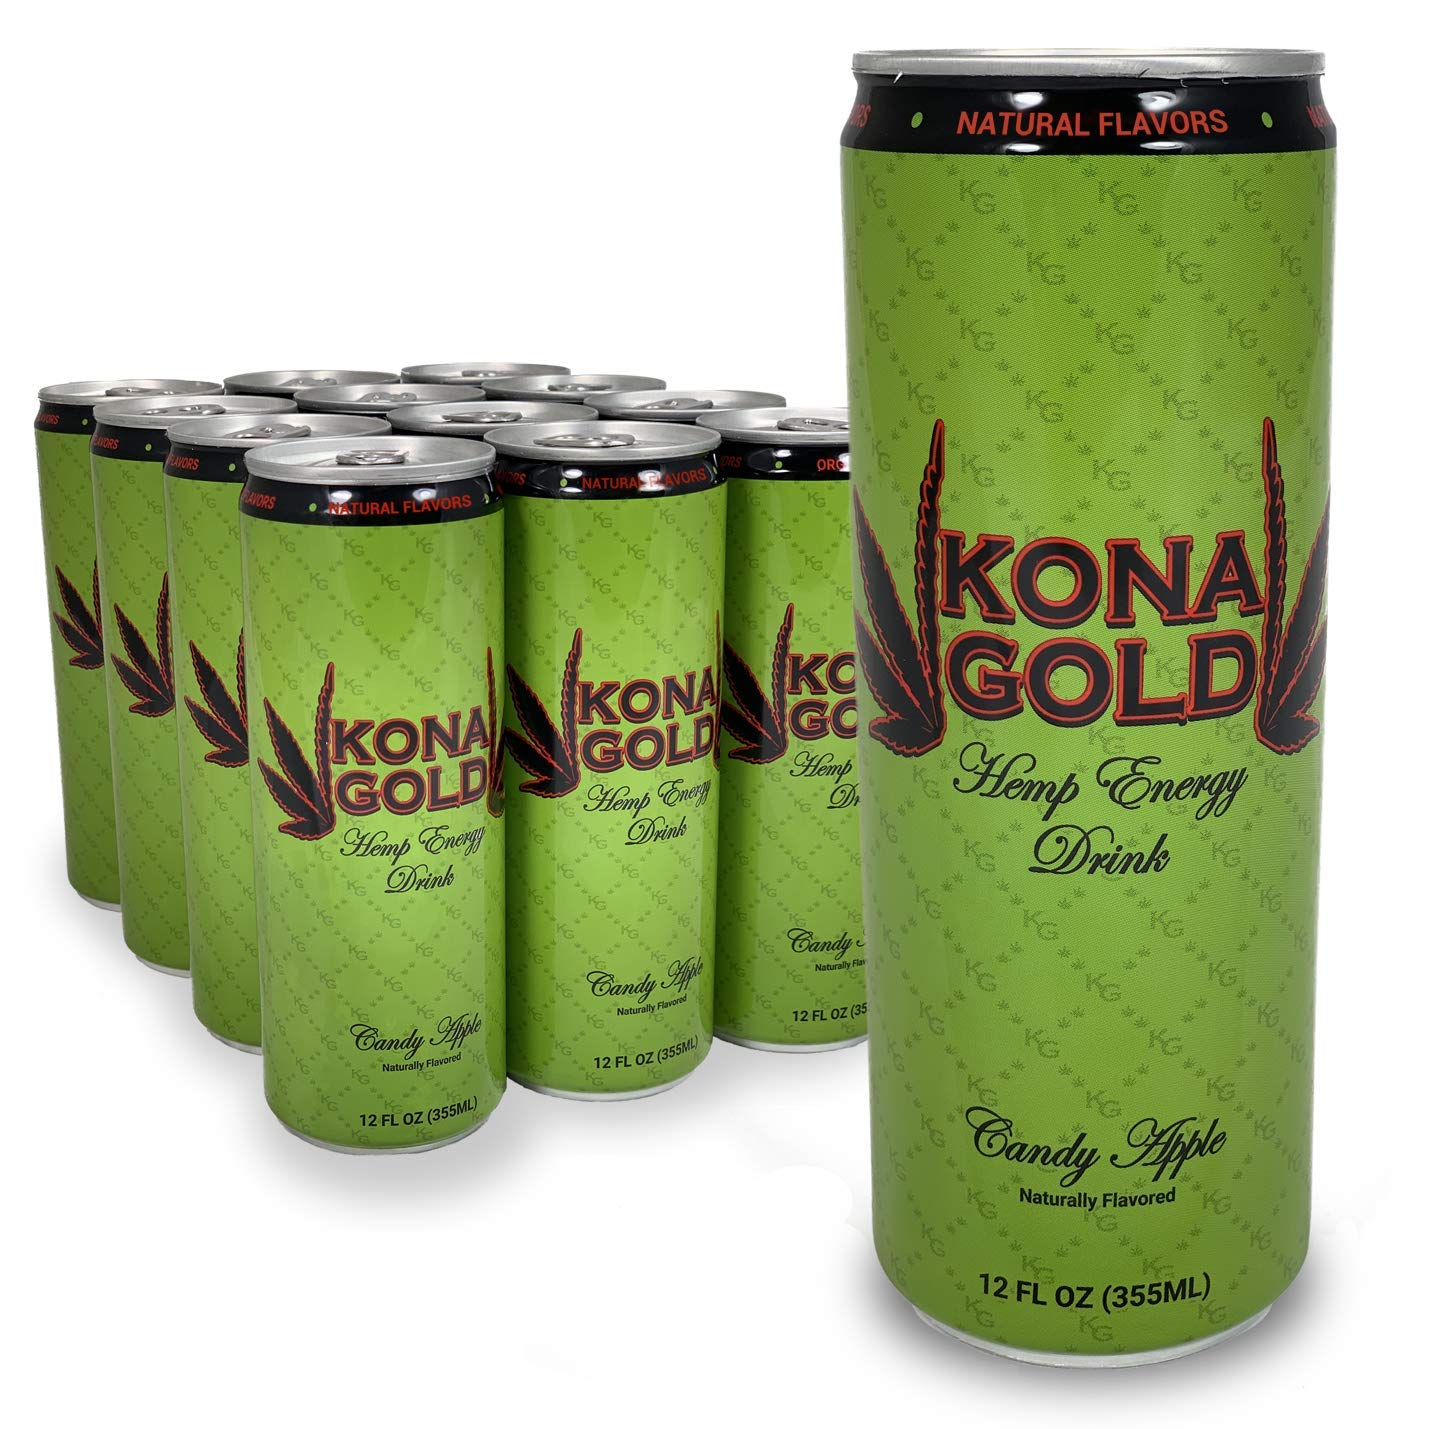 Kona Gold Candy Apple Hemp Energy Drink 12.0 Fluid Ounces, 12 Pack, Zero Calories, Zero Sugar, Natural Flavors, Organic Hemp